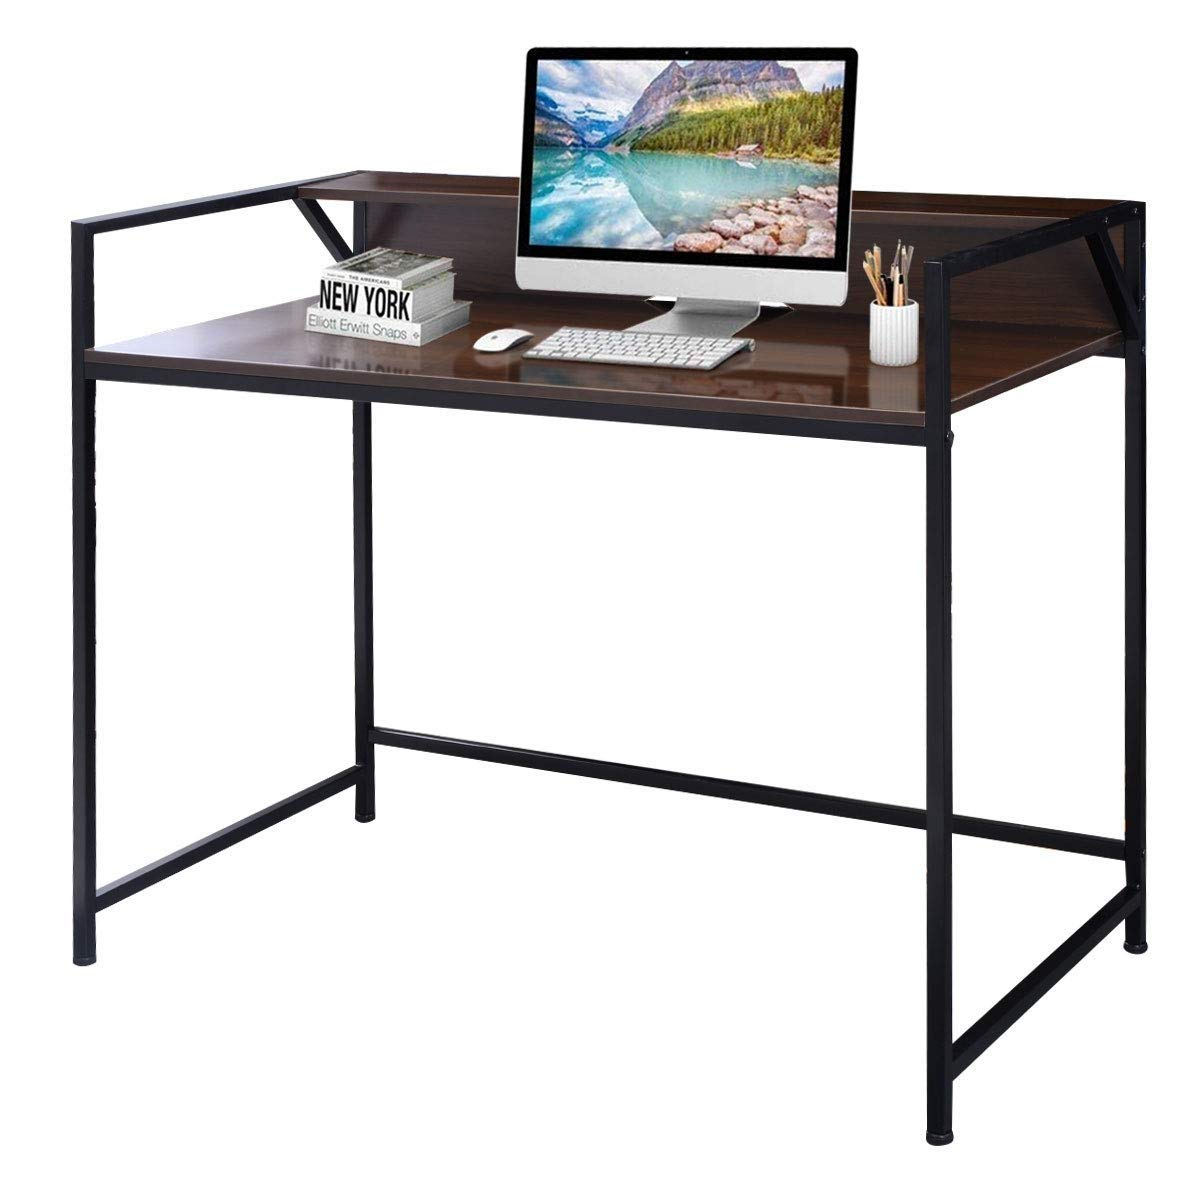 KING77777 Modern Simple and Unique Compact Design Simplistic Style Desk Computer Office Premium Quality Material Furniture by KING77777 (Image #2)